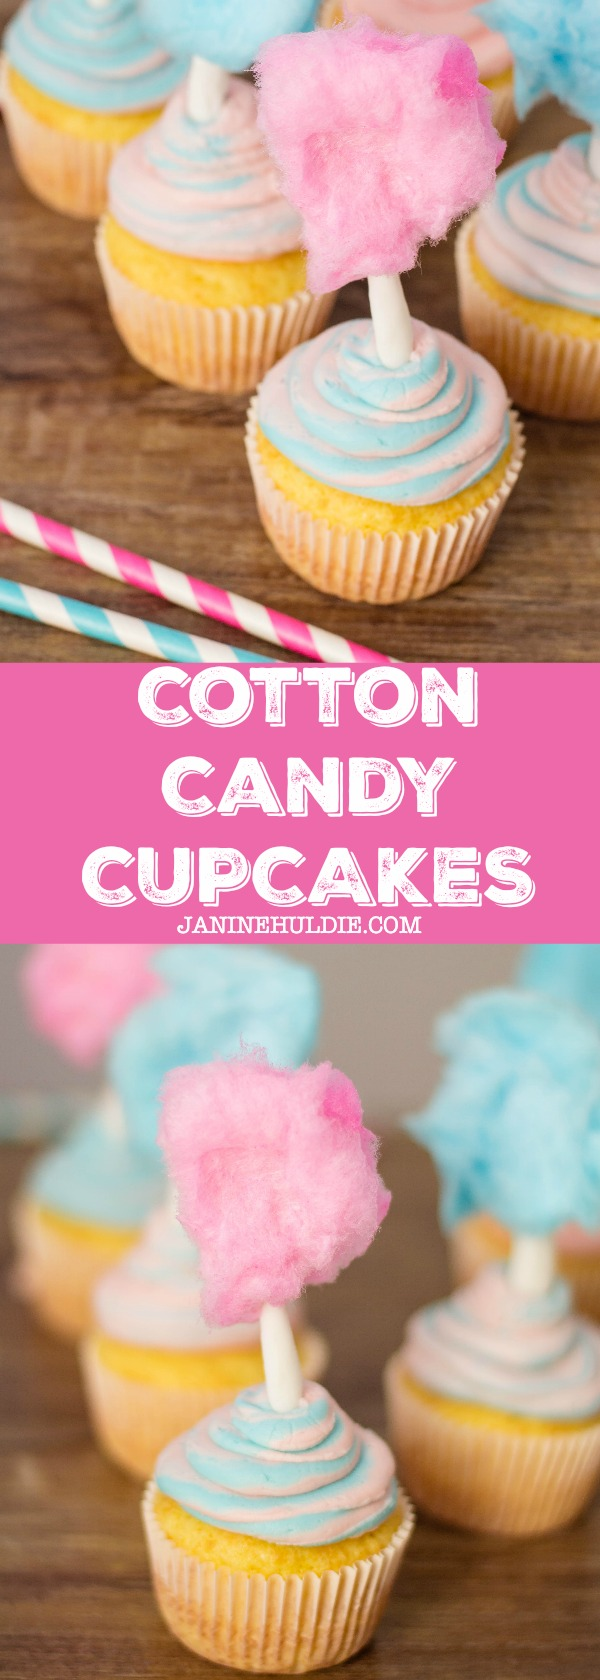 Cotton Candy Cupcakes, This Mom's Confessions